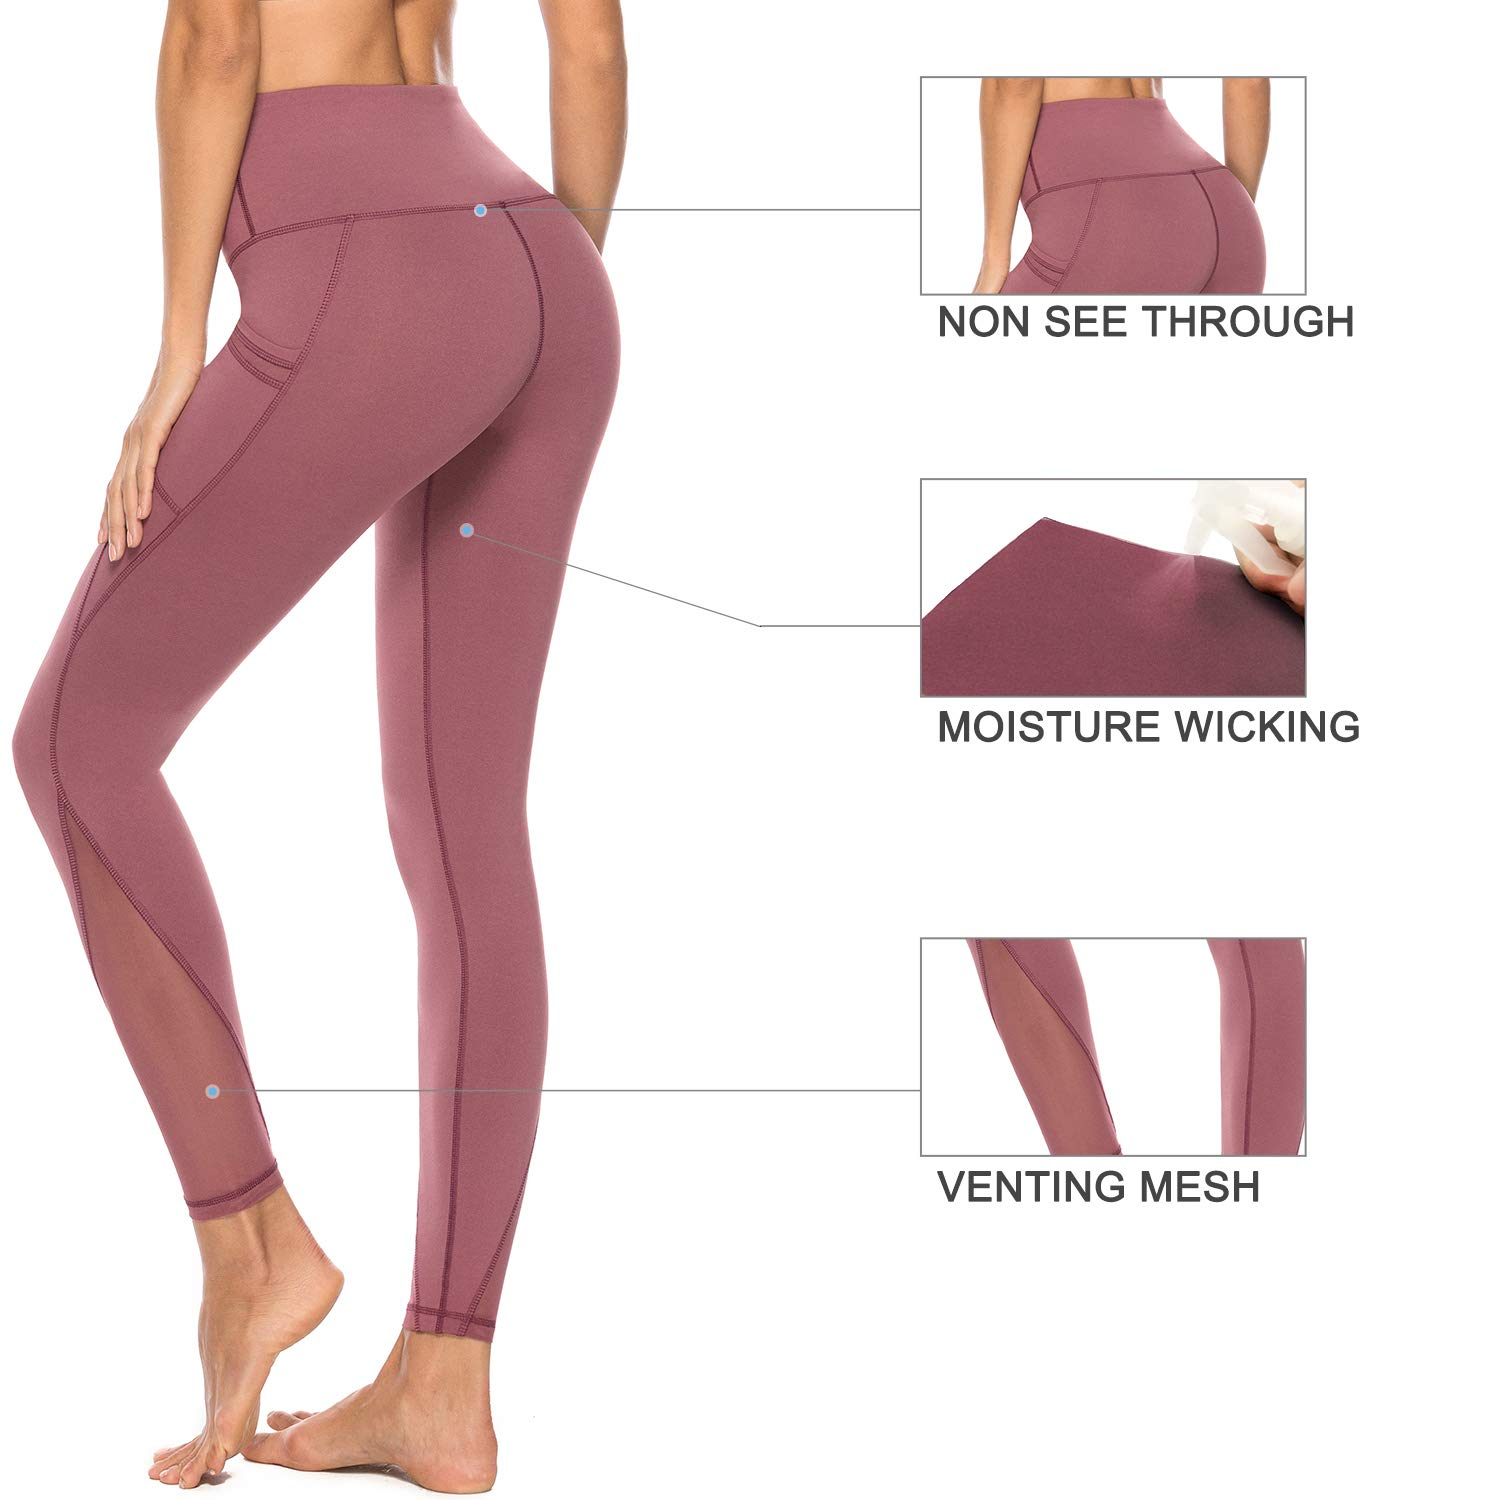 Non See-Through High Waist Tummy Control 4 Way Stretch Leggings Persit Womens Mesh Yoga Pants with 2 Pockets